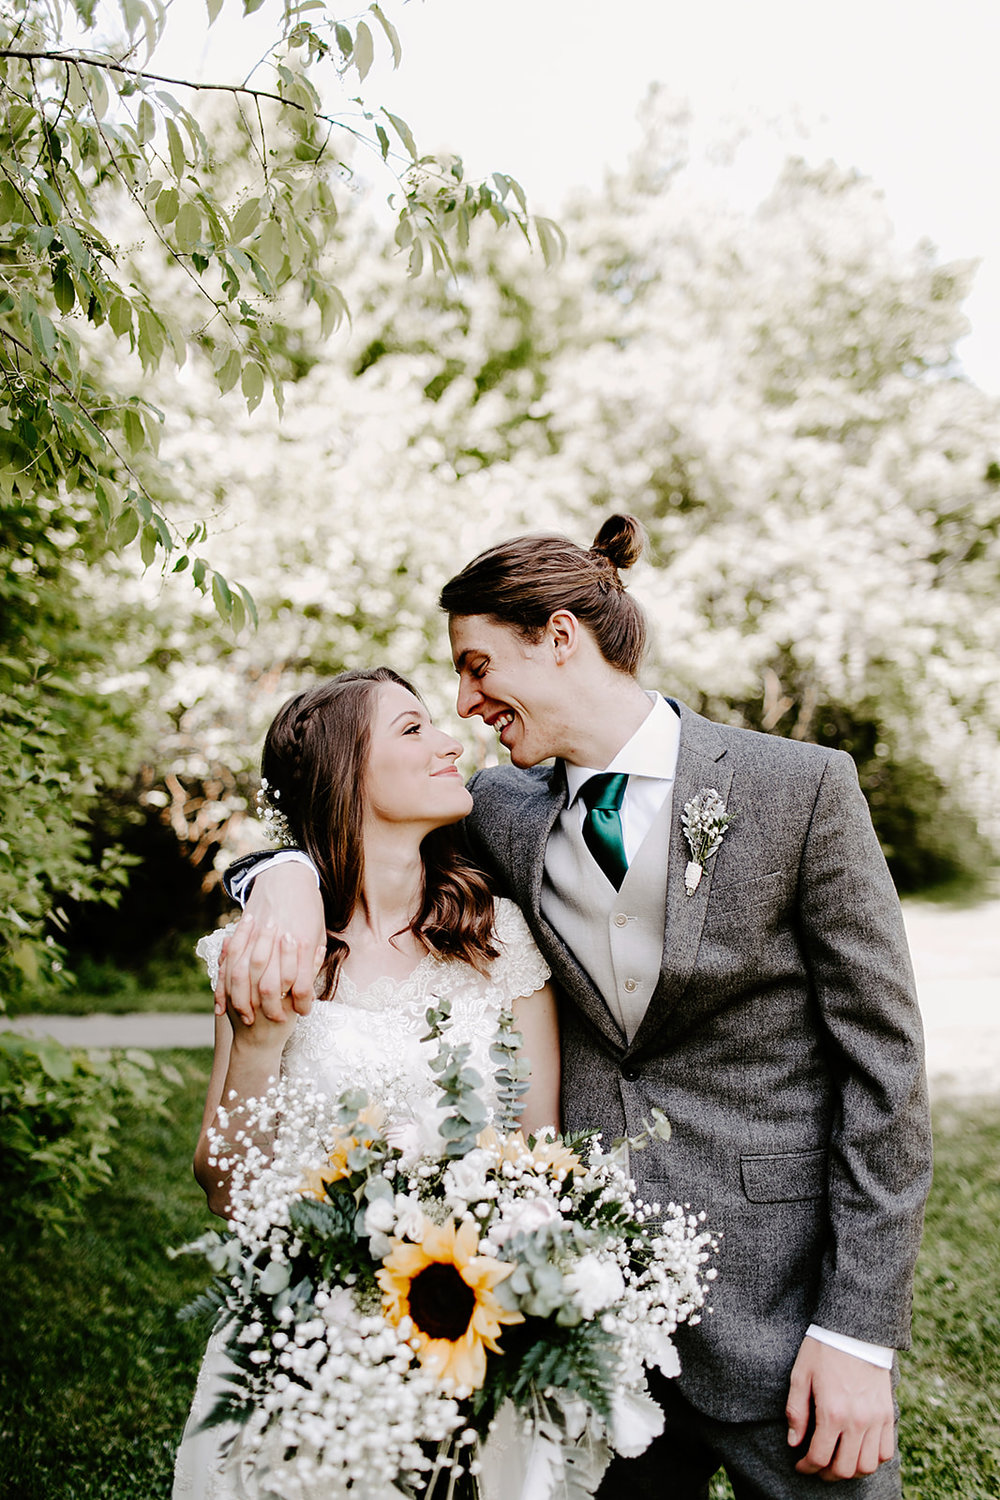 Lily and Easton Wedding Carmel Indiana Cool Creek Park Grace Church Emily Elyse Wehner Photography -171.jpg